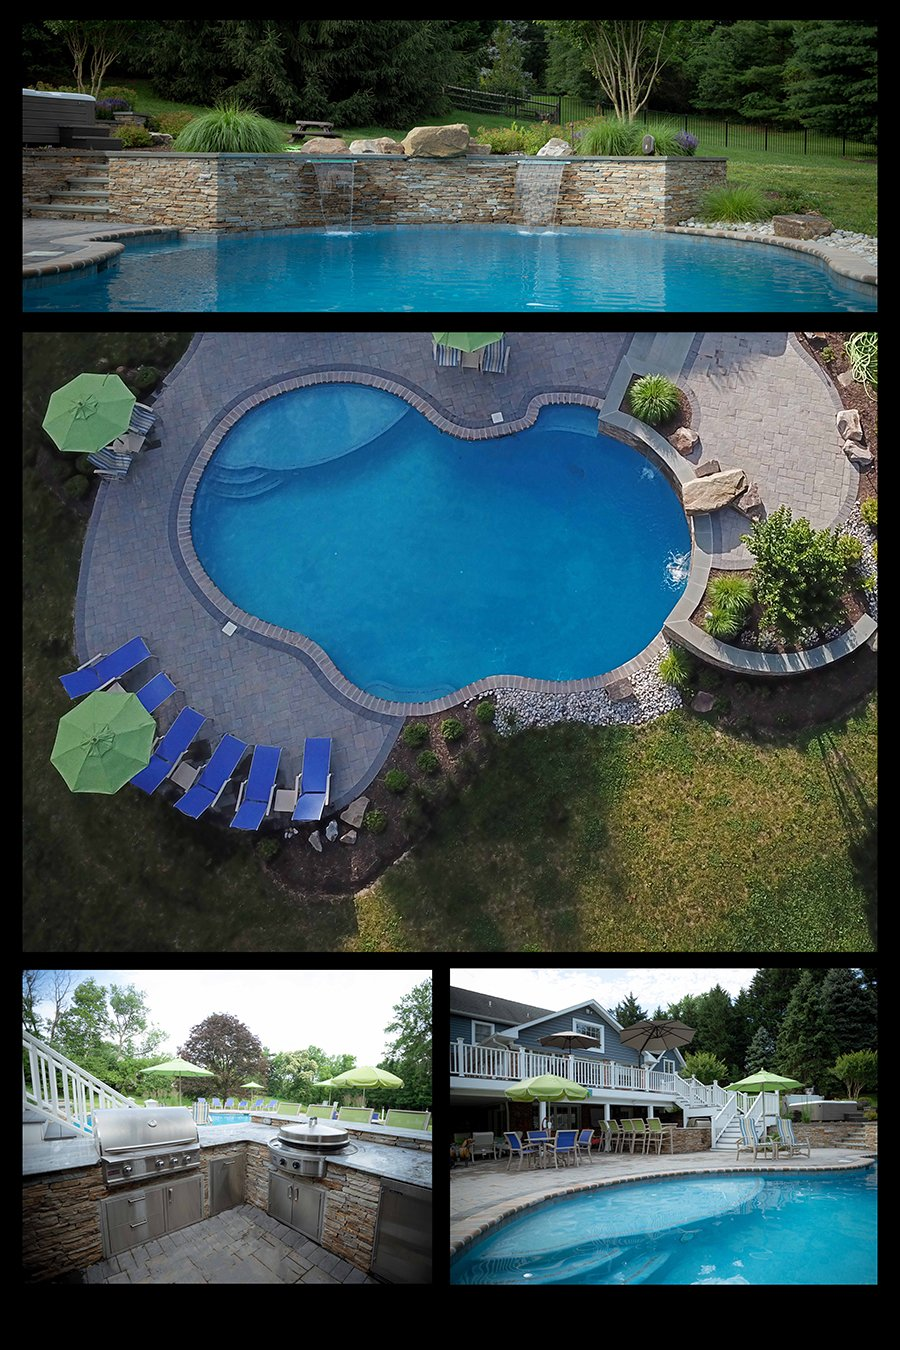 Rhine Pools, Landscaping, Outdoor Kitchen and Swimming Pool builder